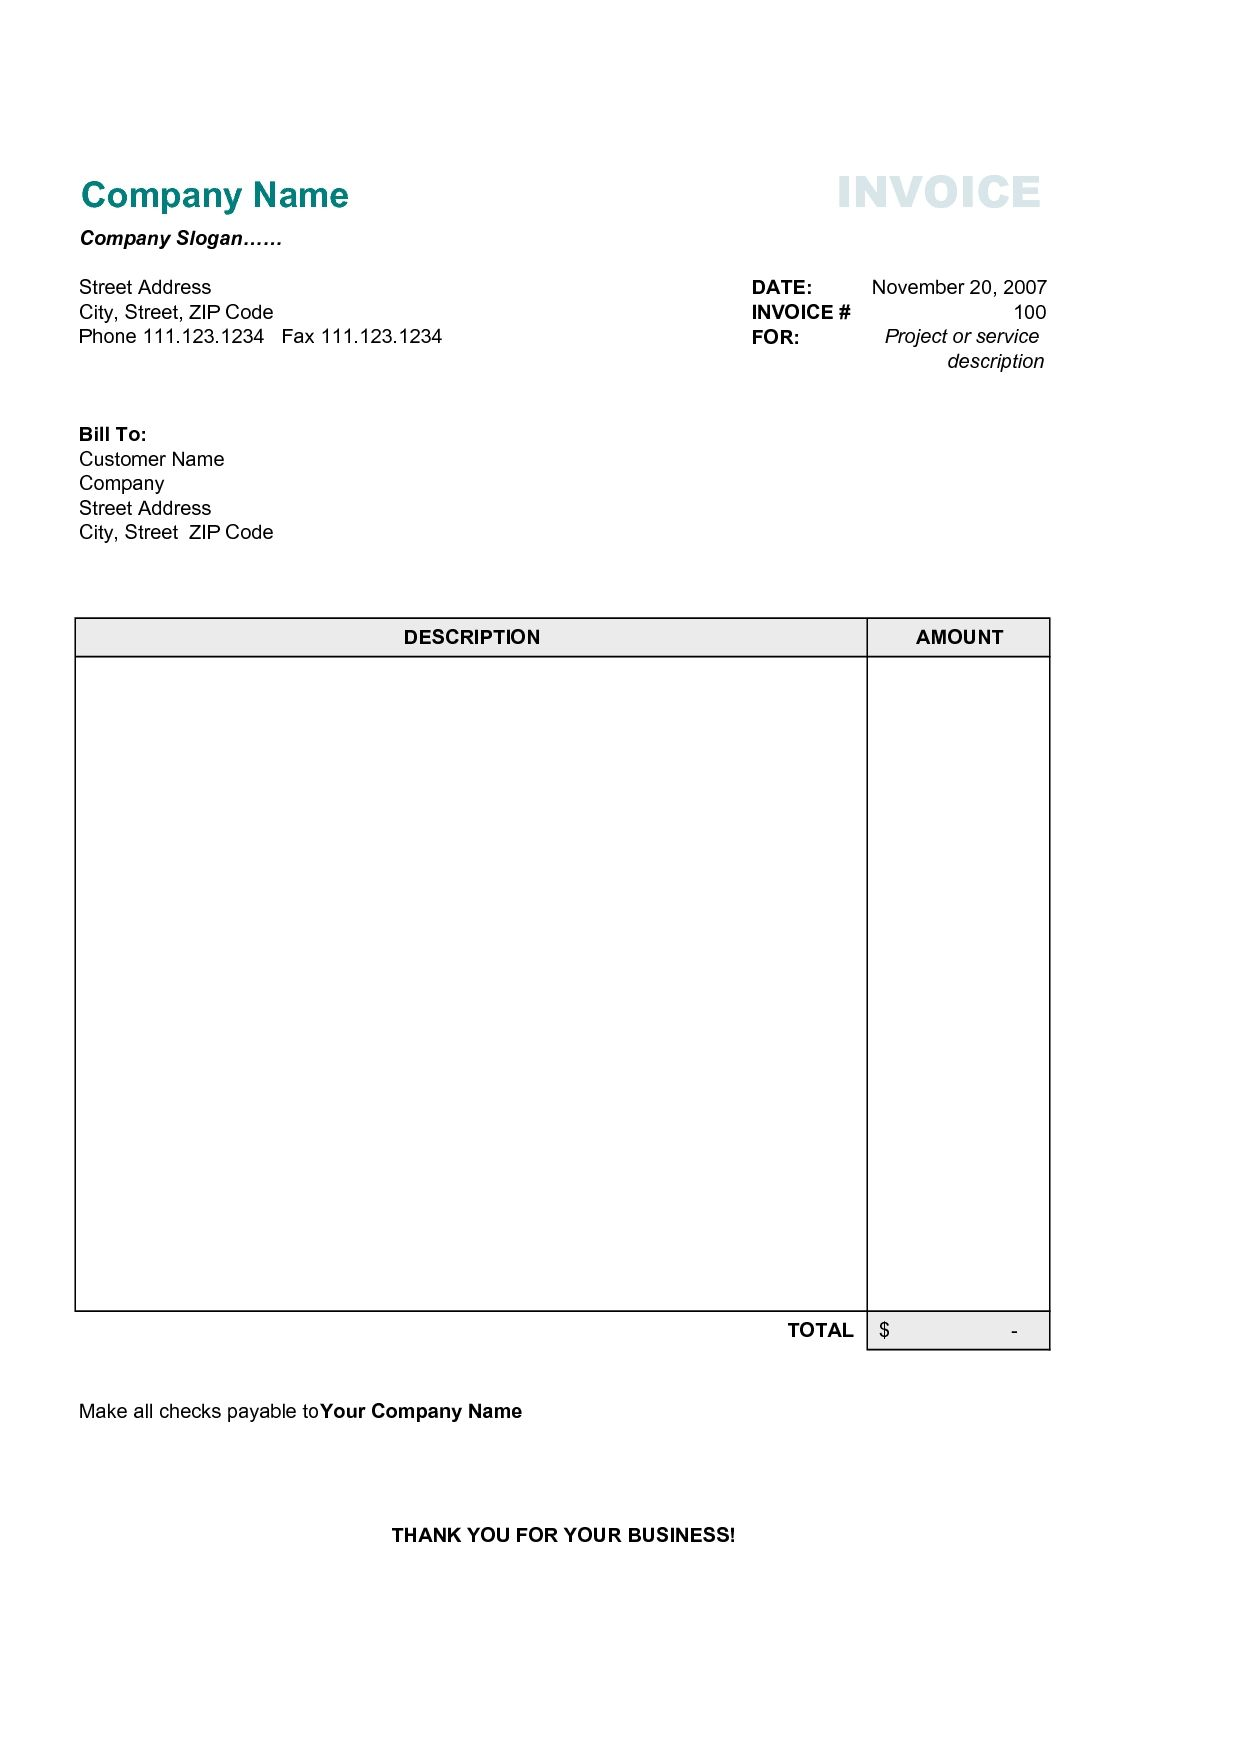 Free Business Invoice Template Best Business Template Free Invoice - Design invoice template word for service business